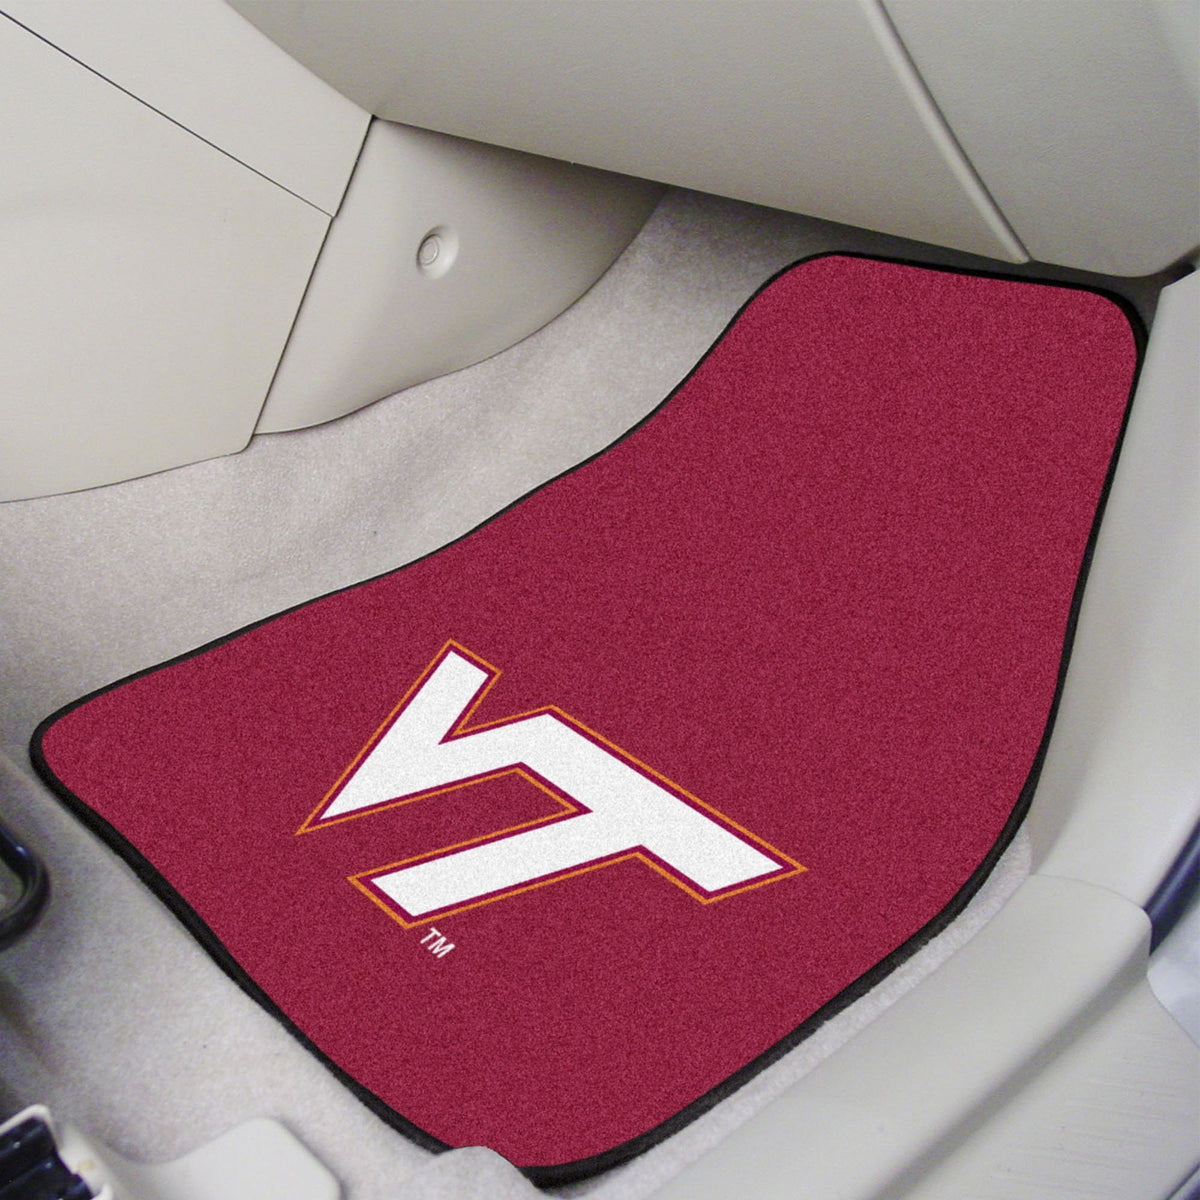 Collegiate - Carpet Car Mat, 2-Piece Set: T - Z Collegiate Car Mat, Front Car Mats, 2-pc Carpet Car Mat Set, Collegiate, Auto Fan Mats Virginia Tech